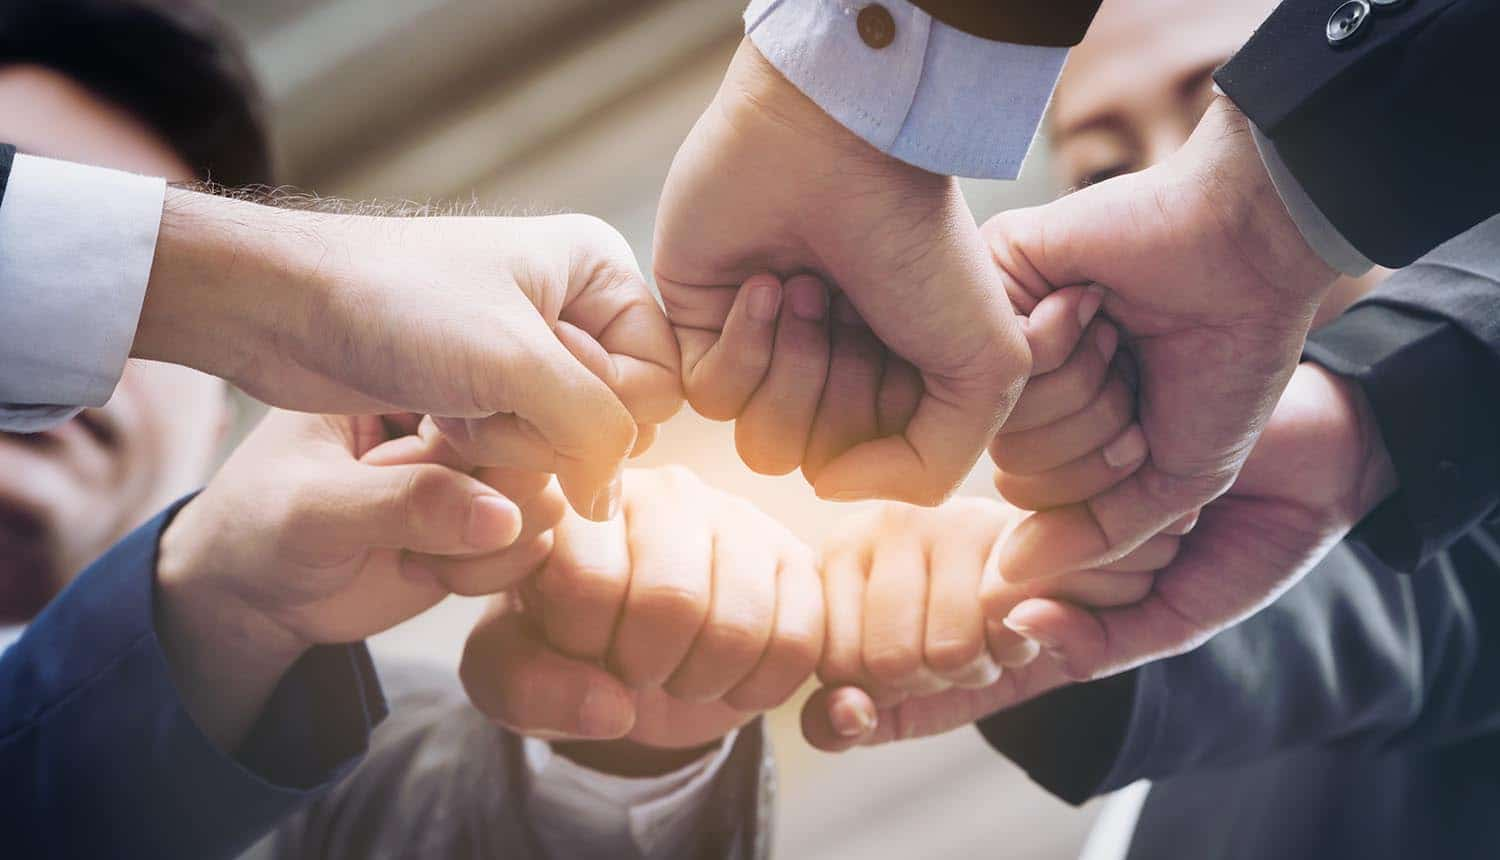 Business team joining hands showing teamwork and success